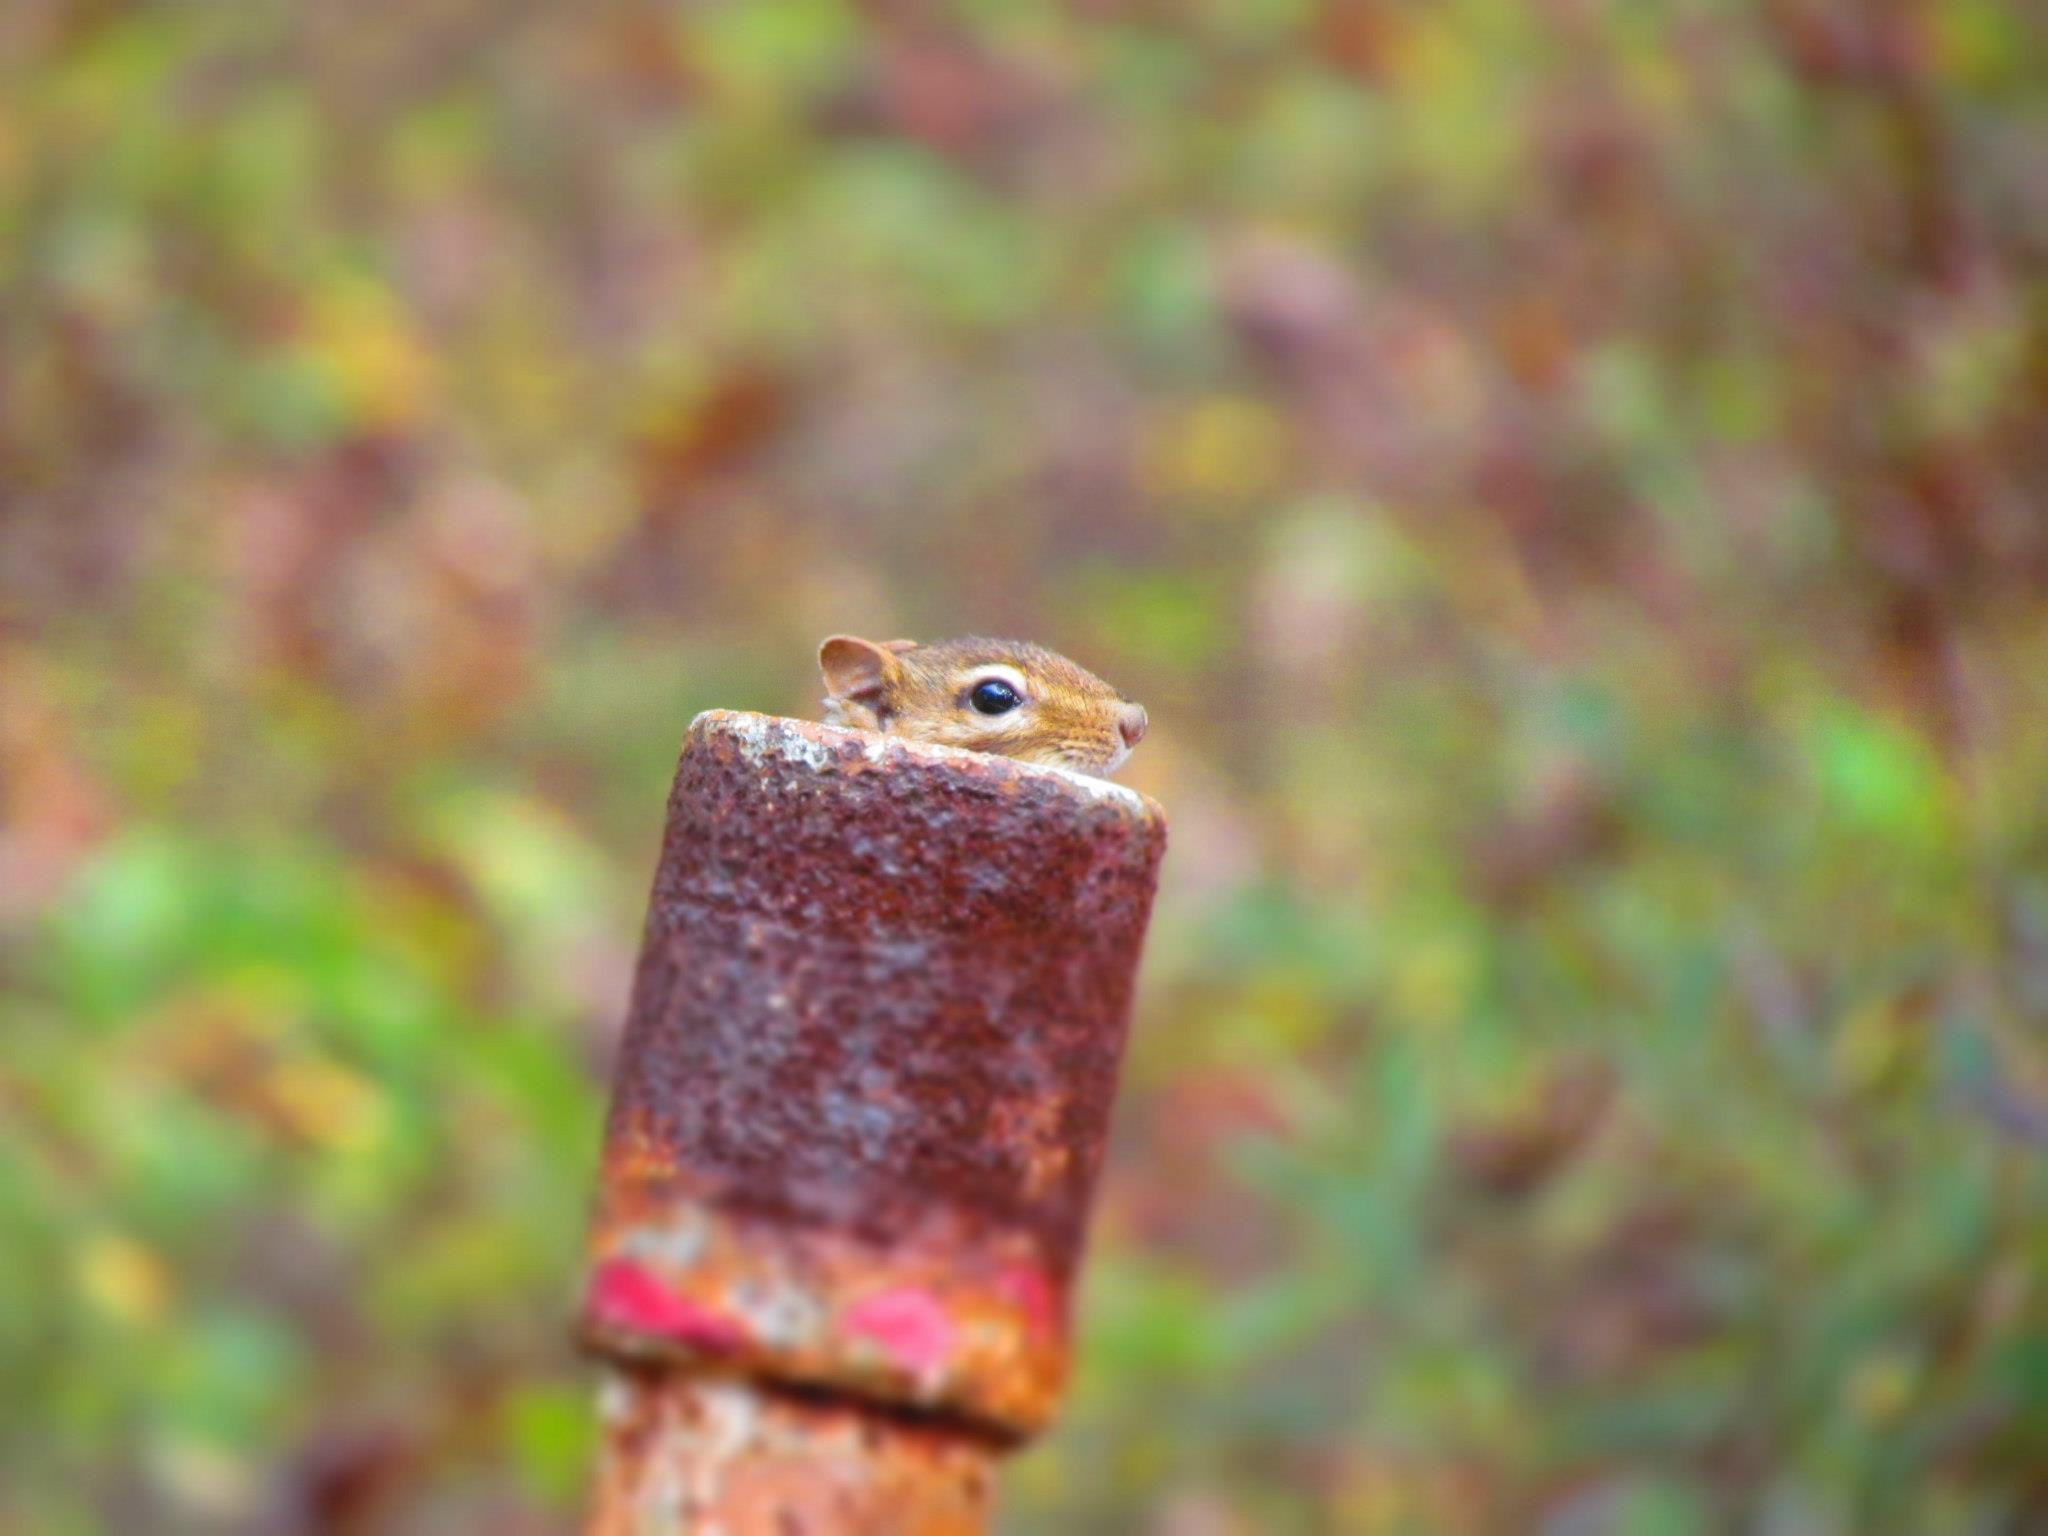 A marmot peeking from behind a rusted post by a green background